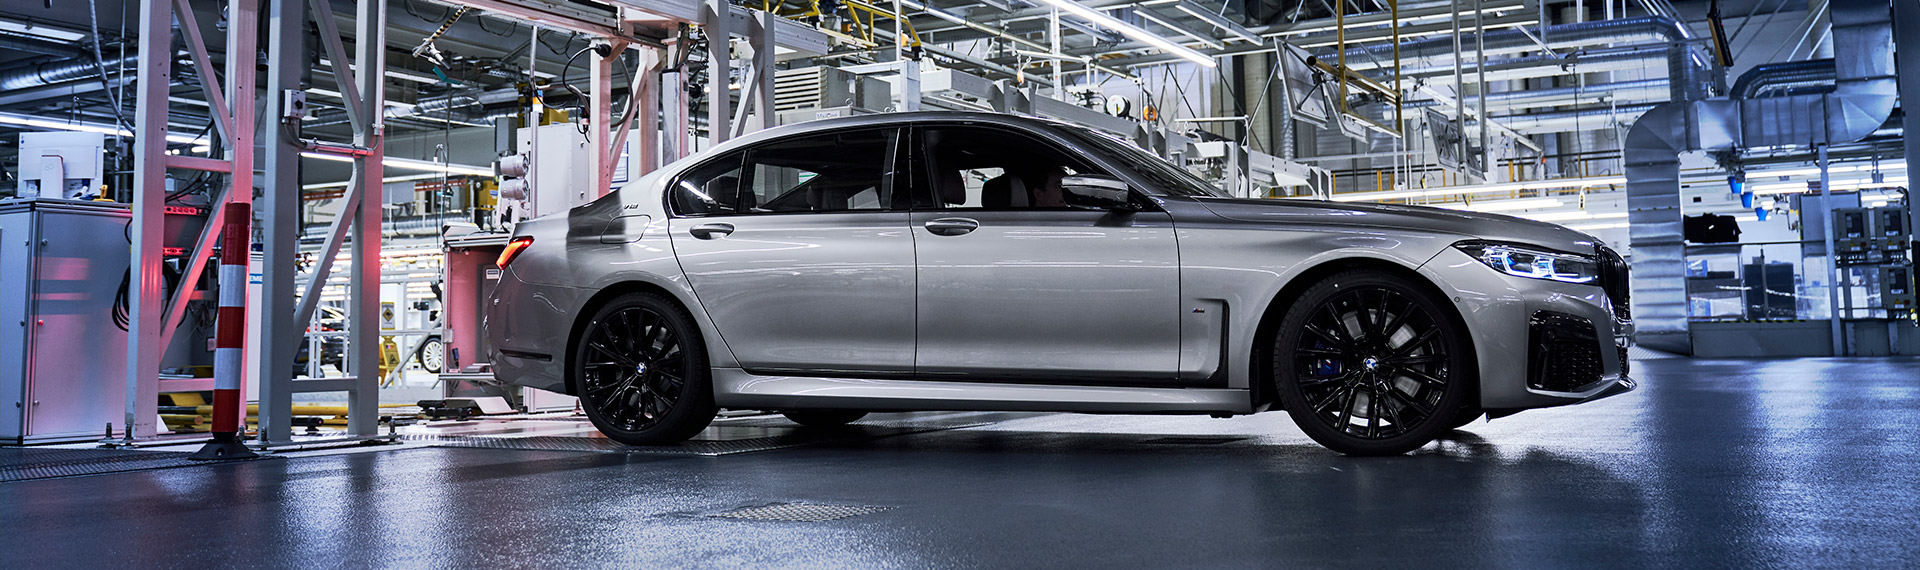 New BMW 7 Series production.